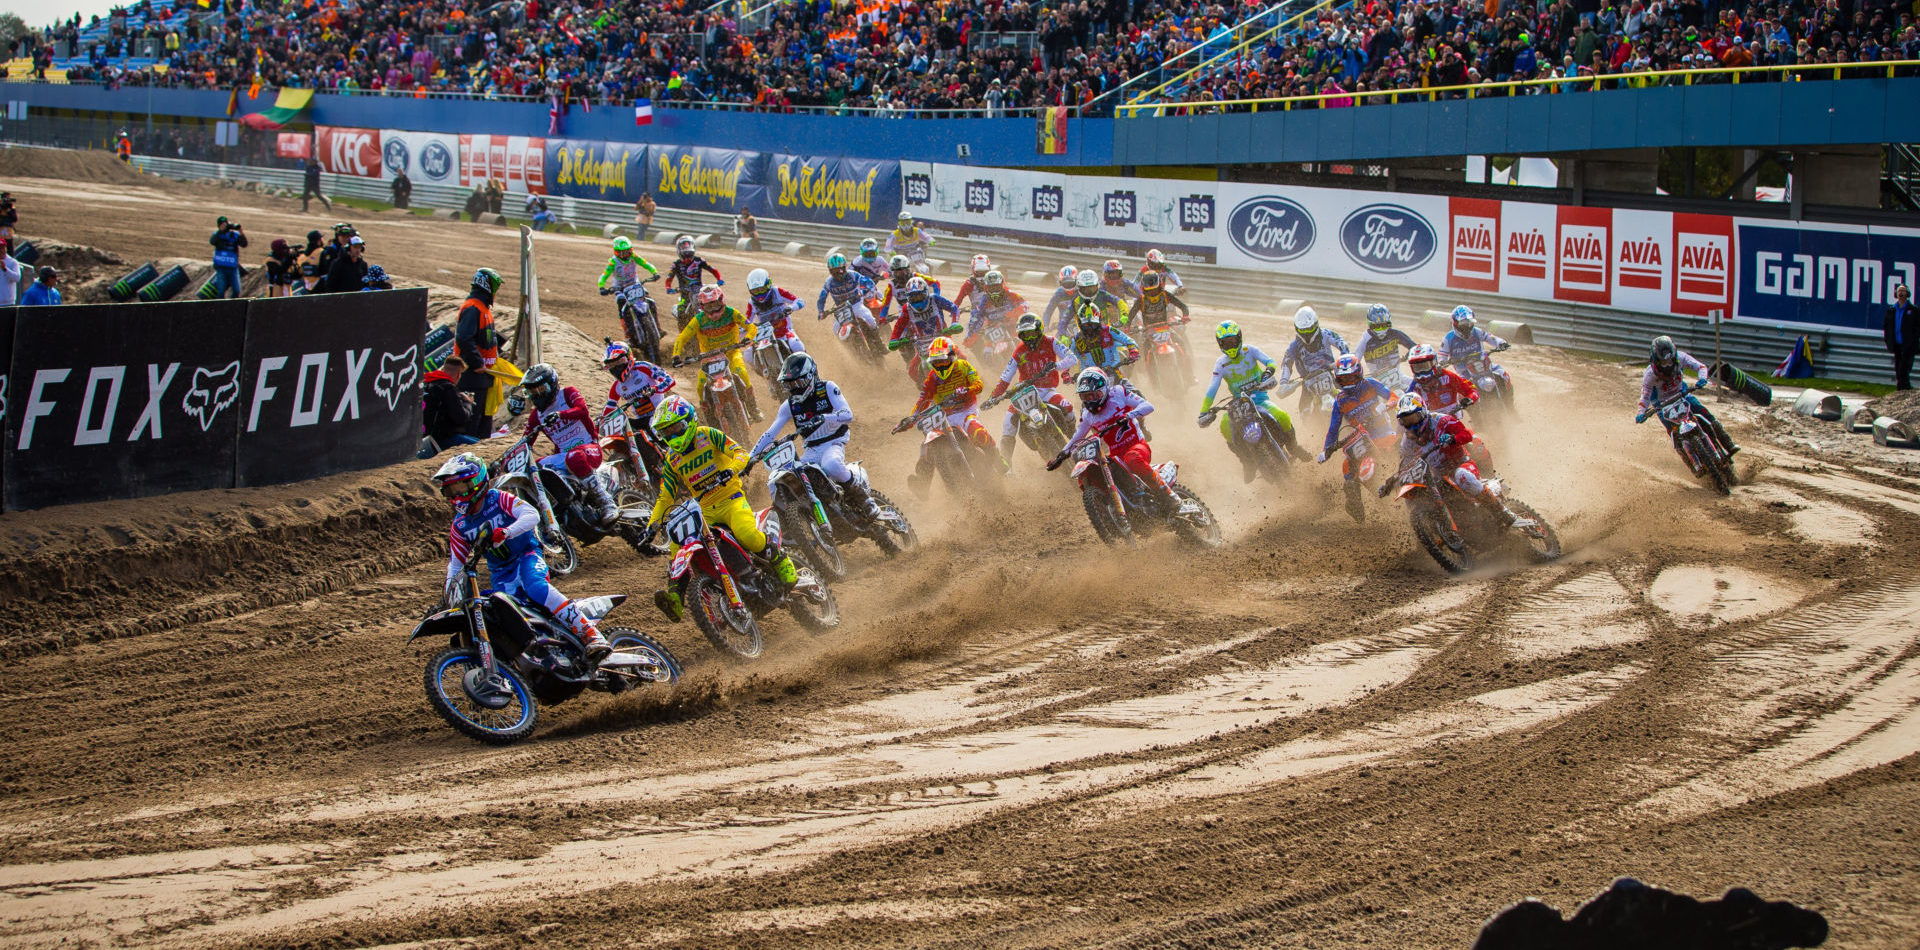 The start of a moto at the 2019 FIM Motocross of Nations at TT Circuit Assen. Photo by Jeff Kardas, courtesy AMA.